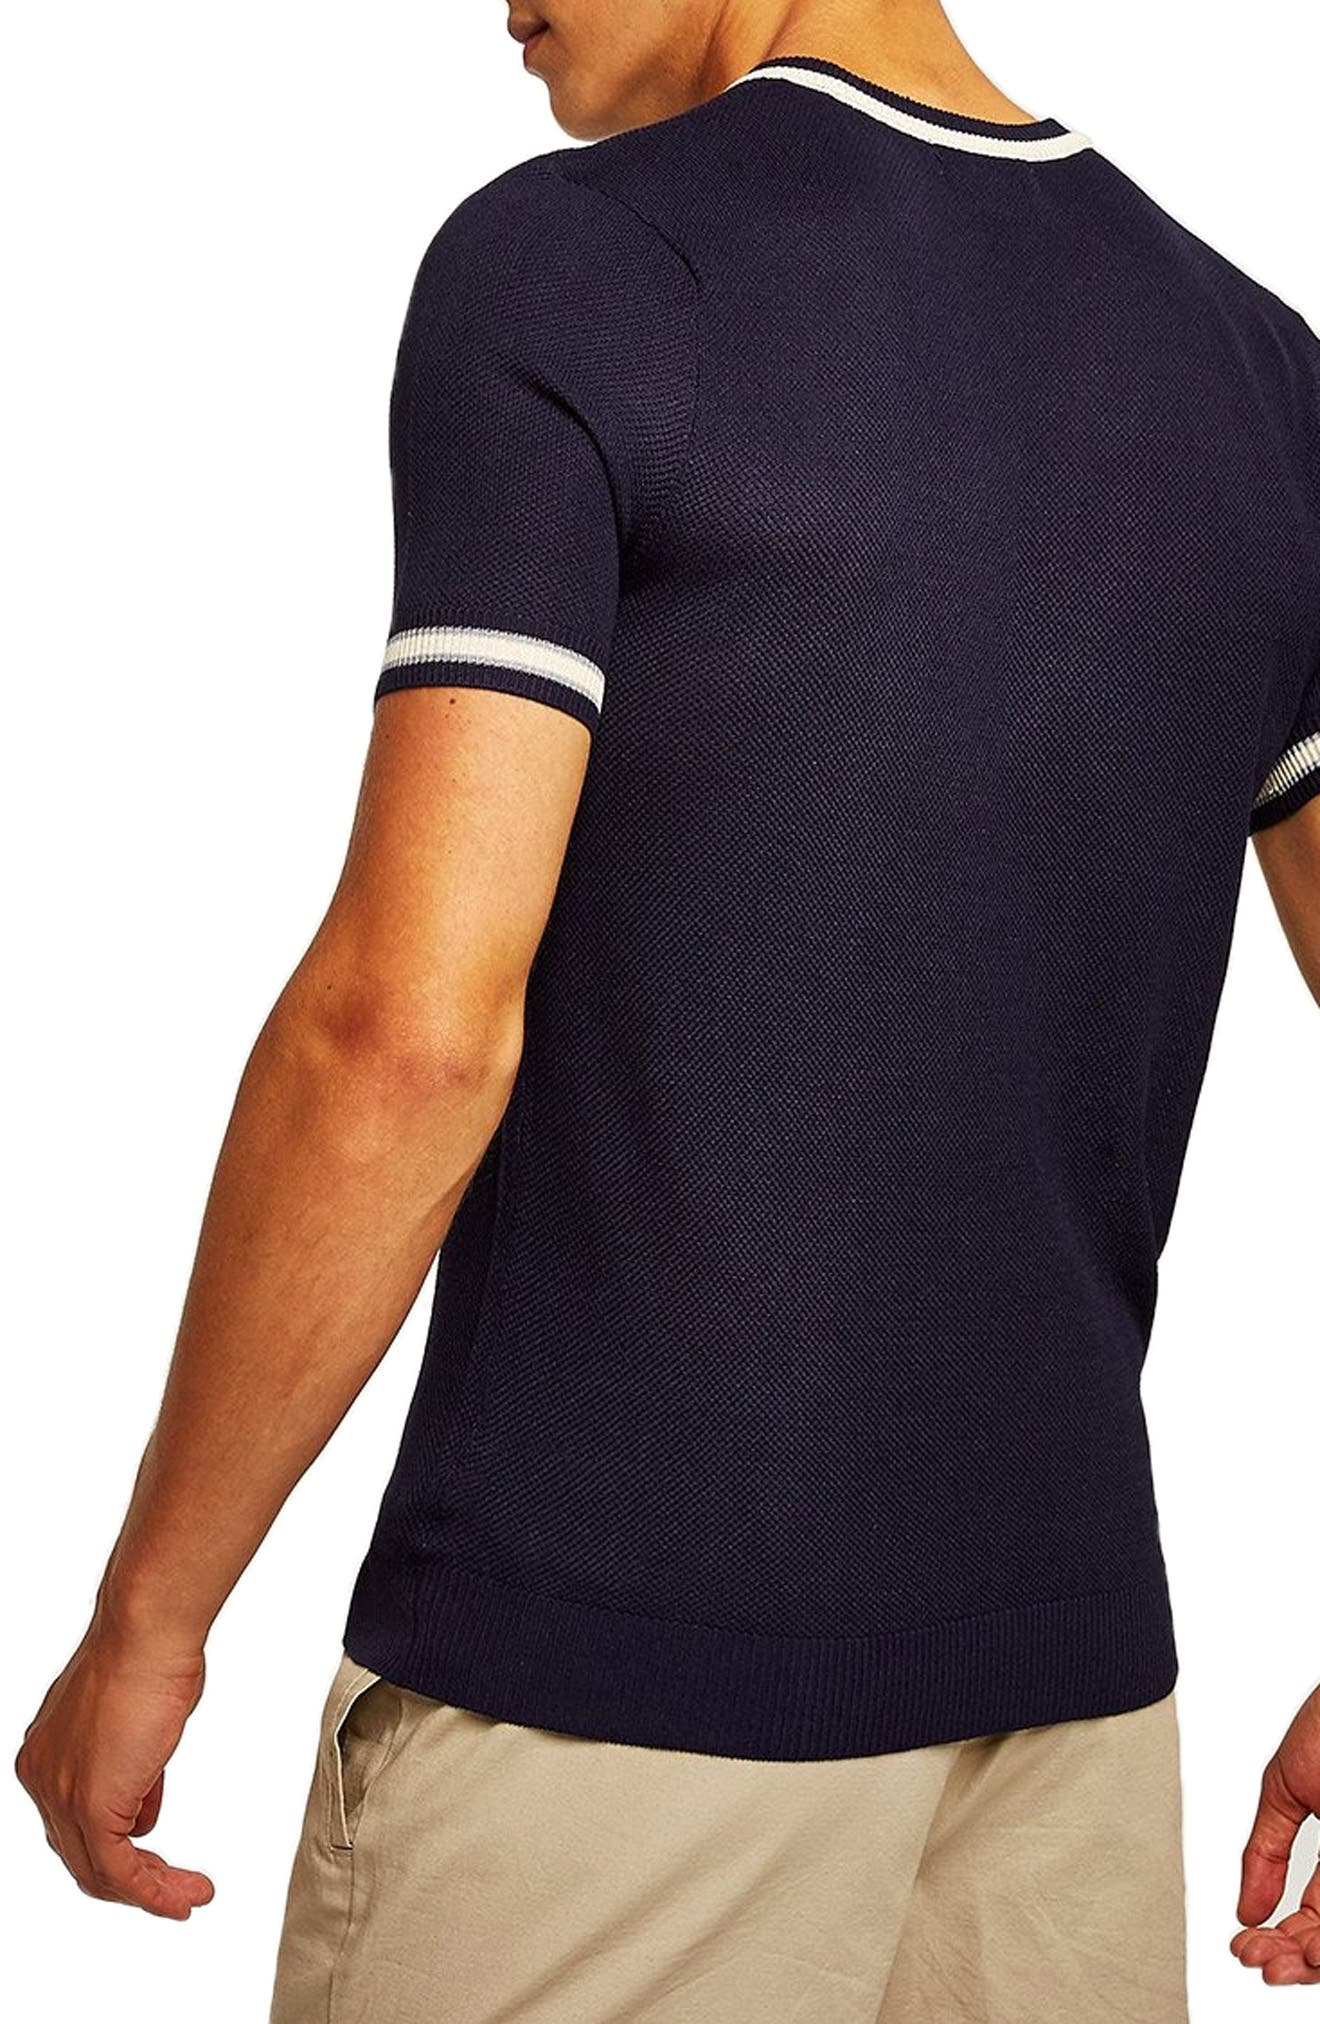 Tipping Classic Fit Short Sleeve Sweater,                             Alternate thumbnail 2, color,                             NAVY BLUE